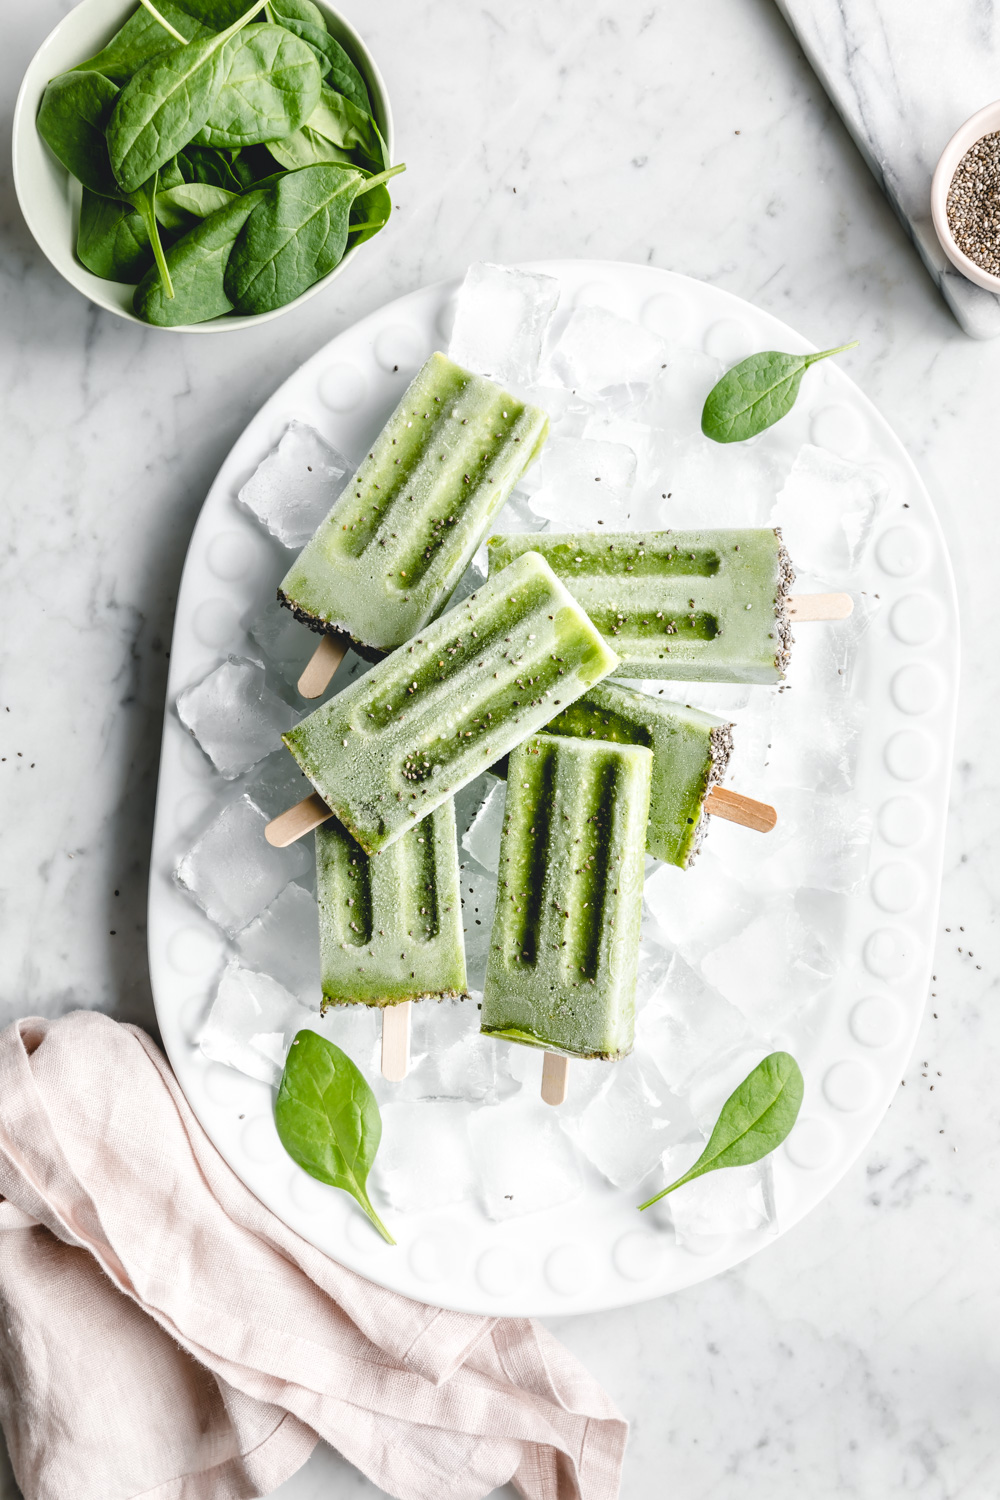 green popsicles on white plate with green leaves